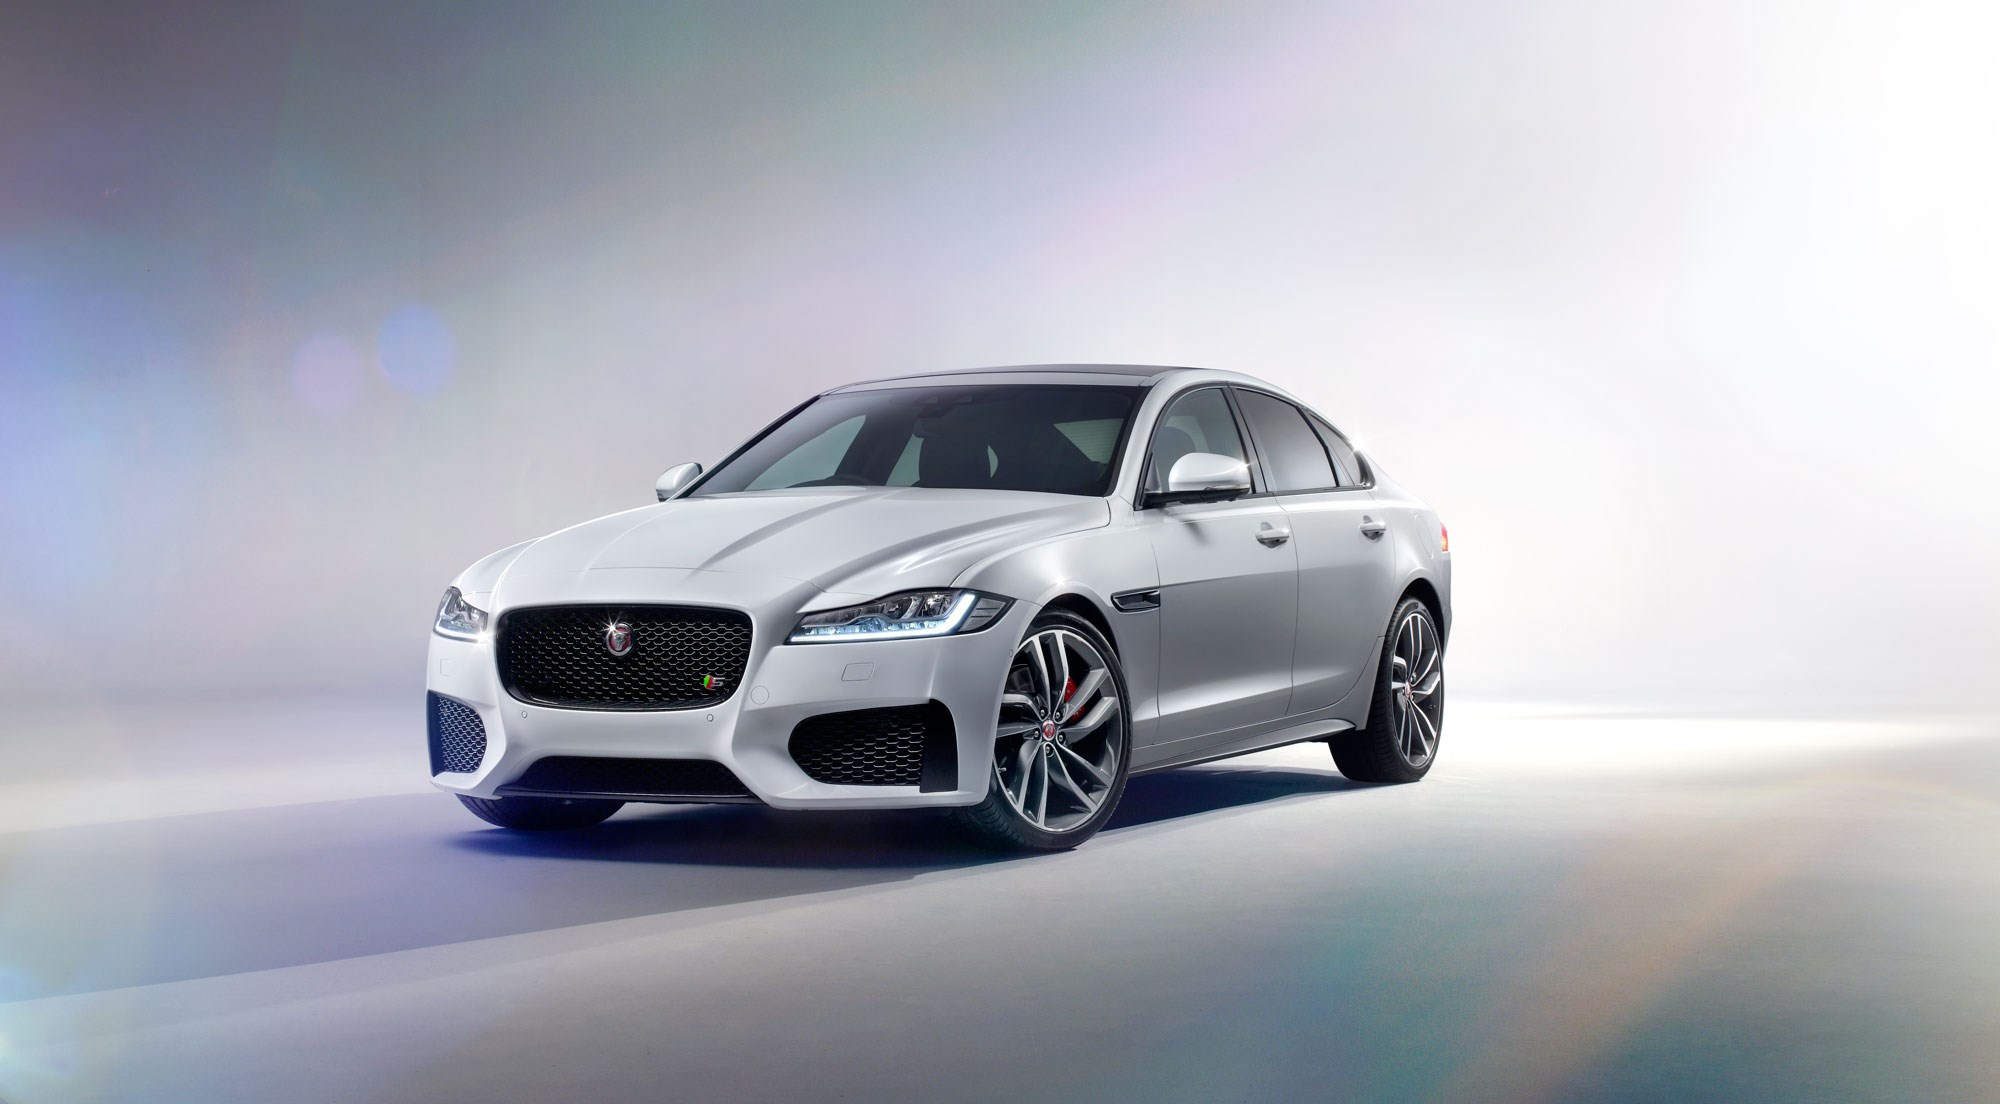 Captivating This Is An S Badged Model, Hence The Bodykit The New 2015 Jaguar XF ...